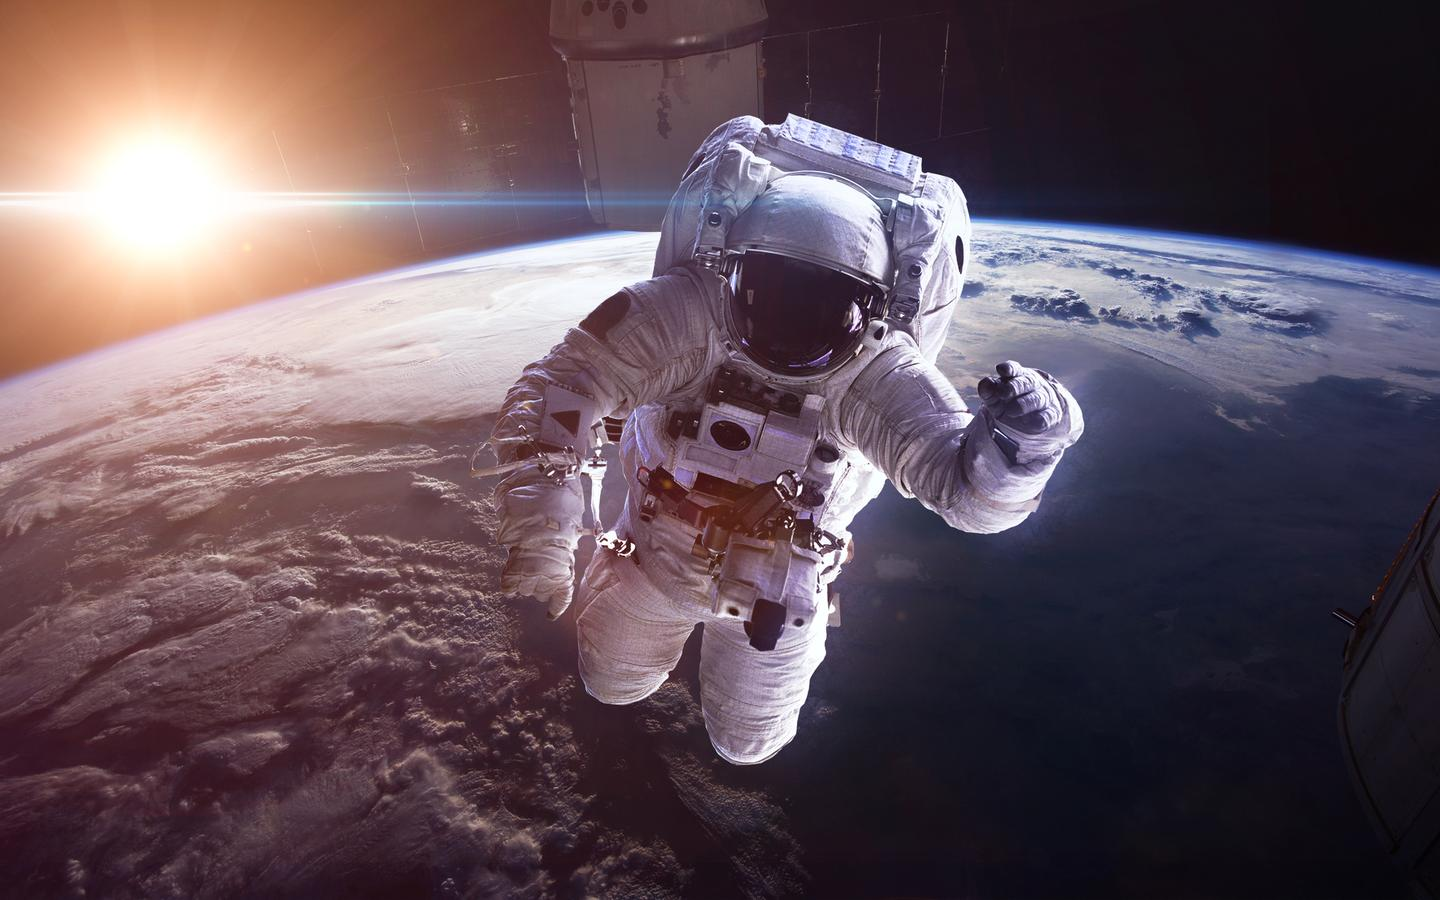 Astronauts have to contend with a range of health risks when venturing into space, but scientists believe entering a form of hibernation might help on extended journeys